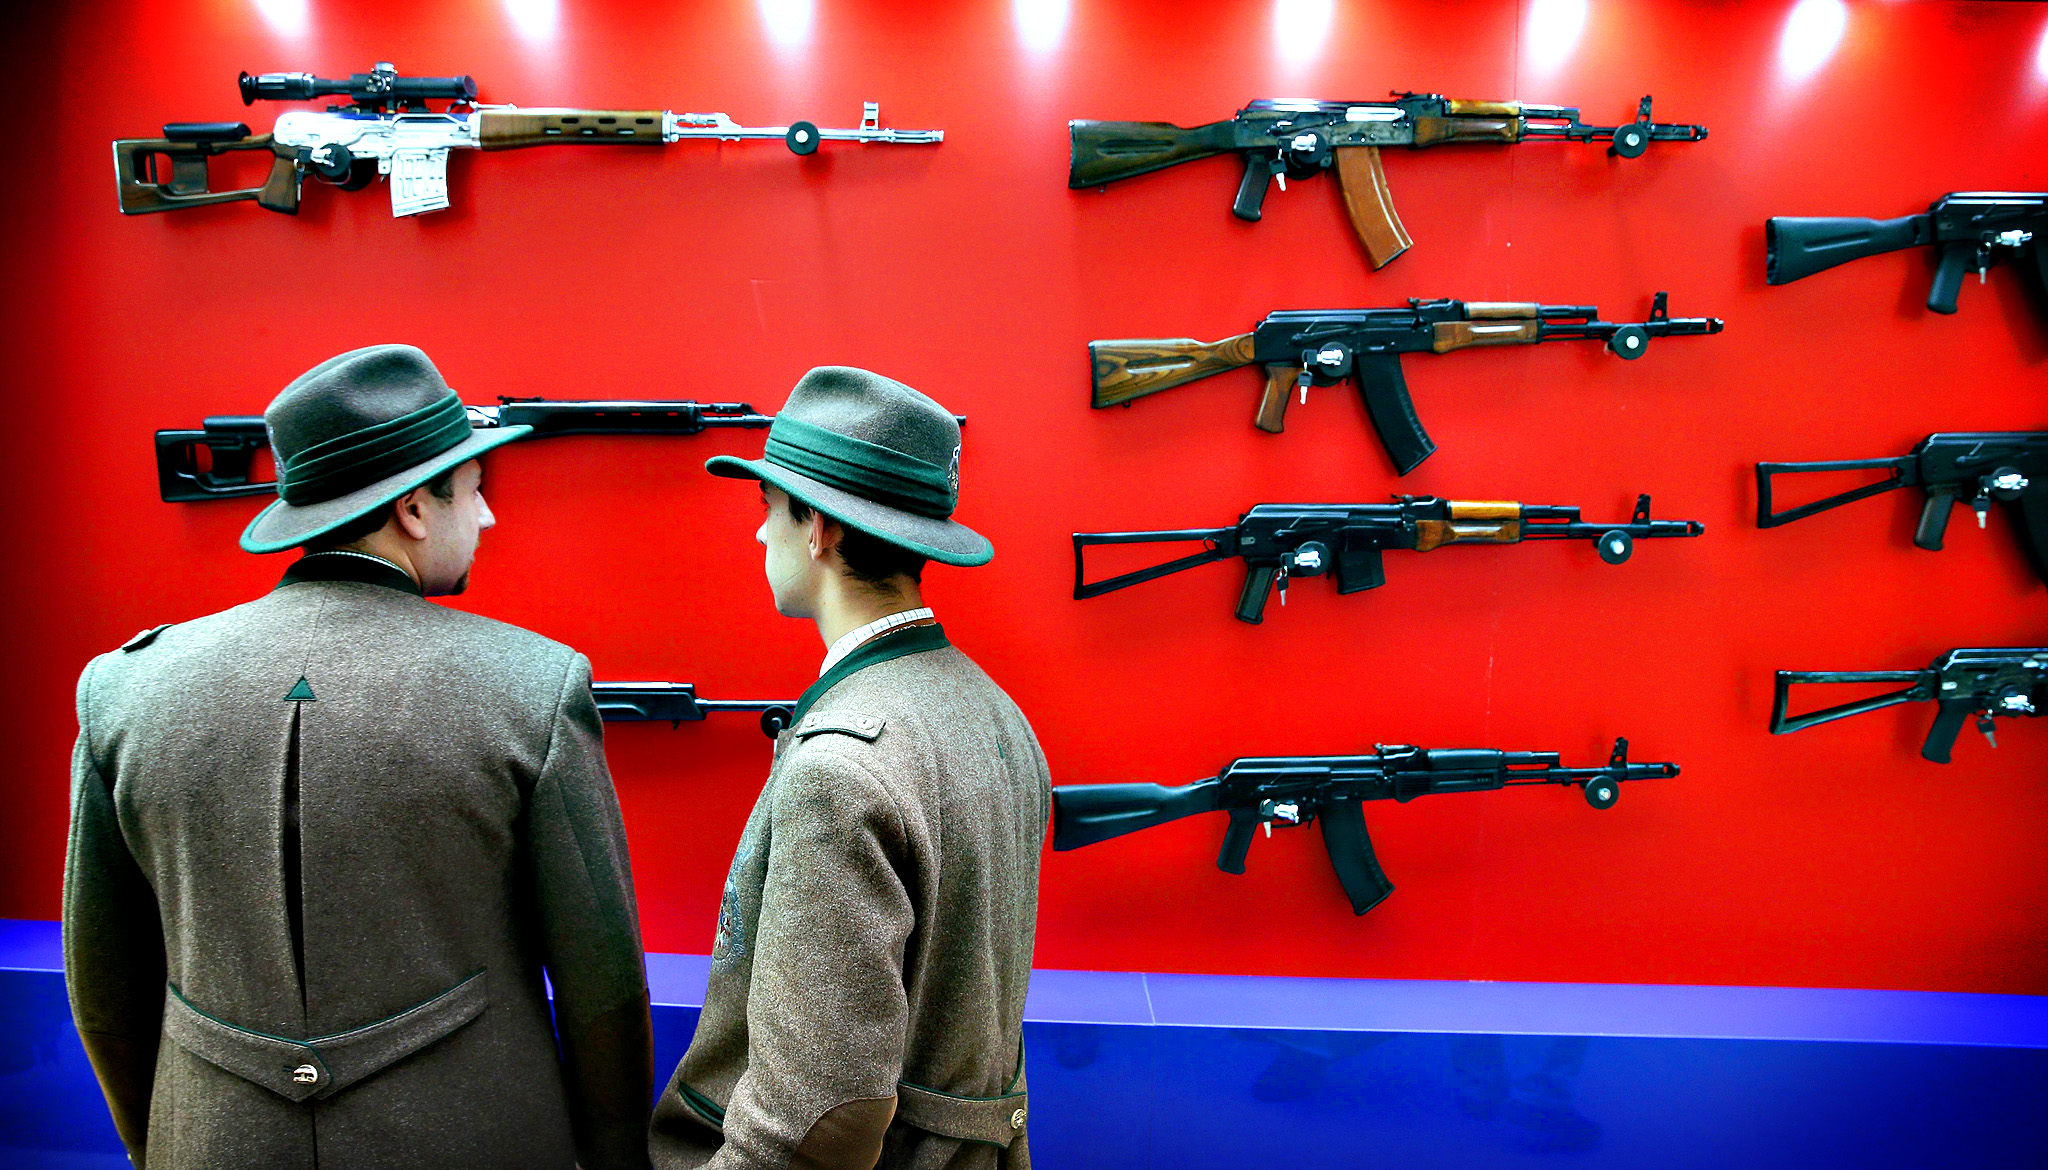 Visitors look at Kalashnikov automatic rifles during the Arms and Hunting Exhibition in Moscow, Russia, 10 October 2013. The exhibition that runs from 10 to 13 October 2013.